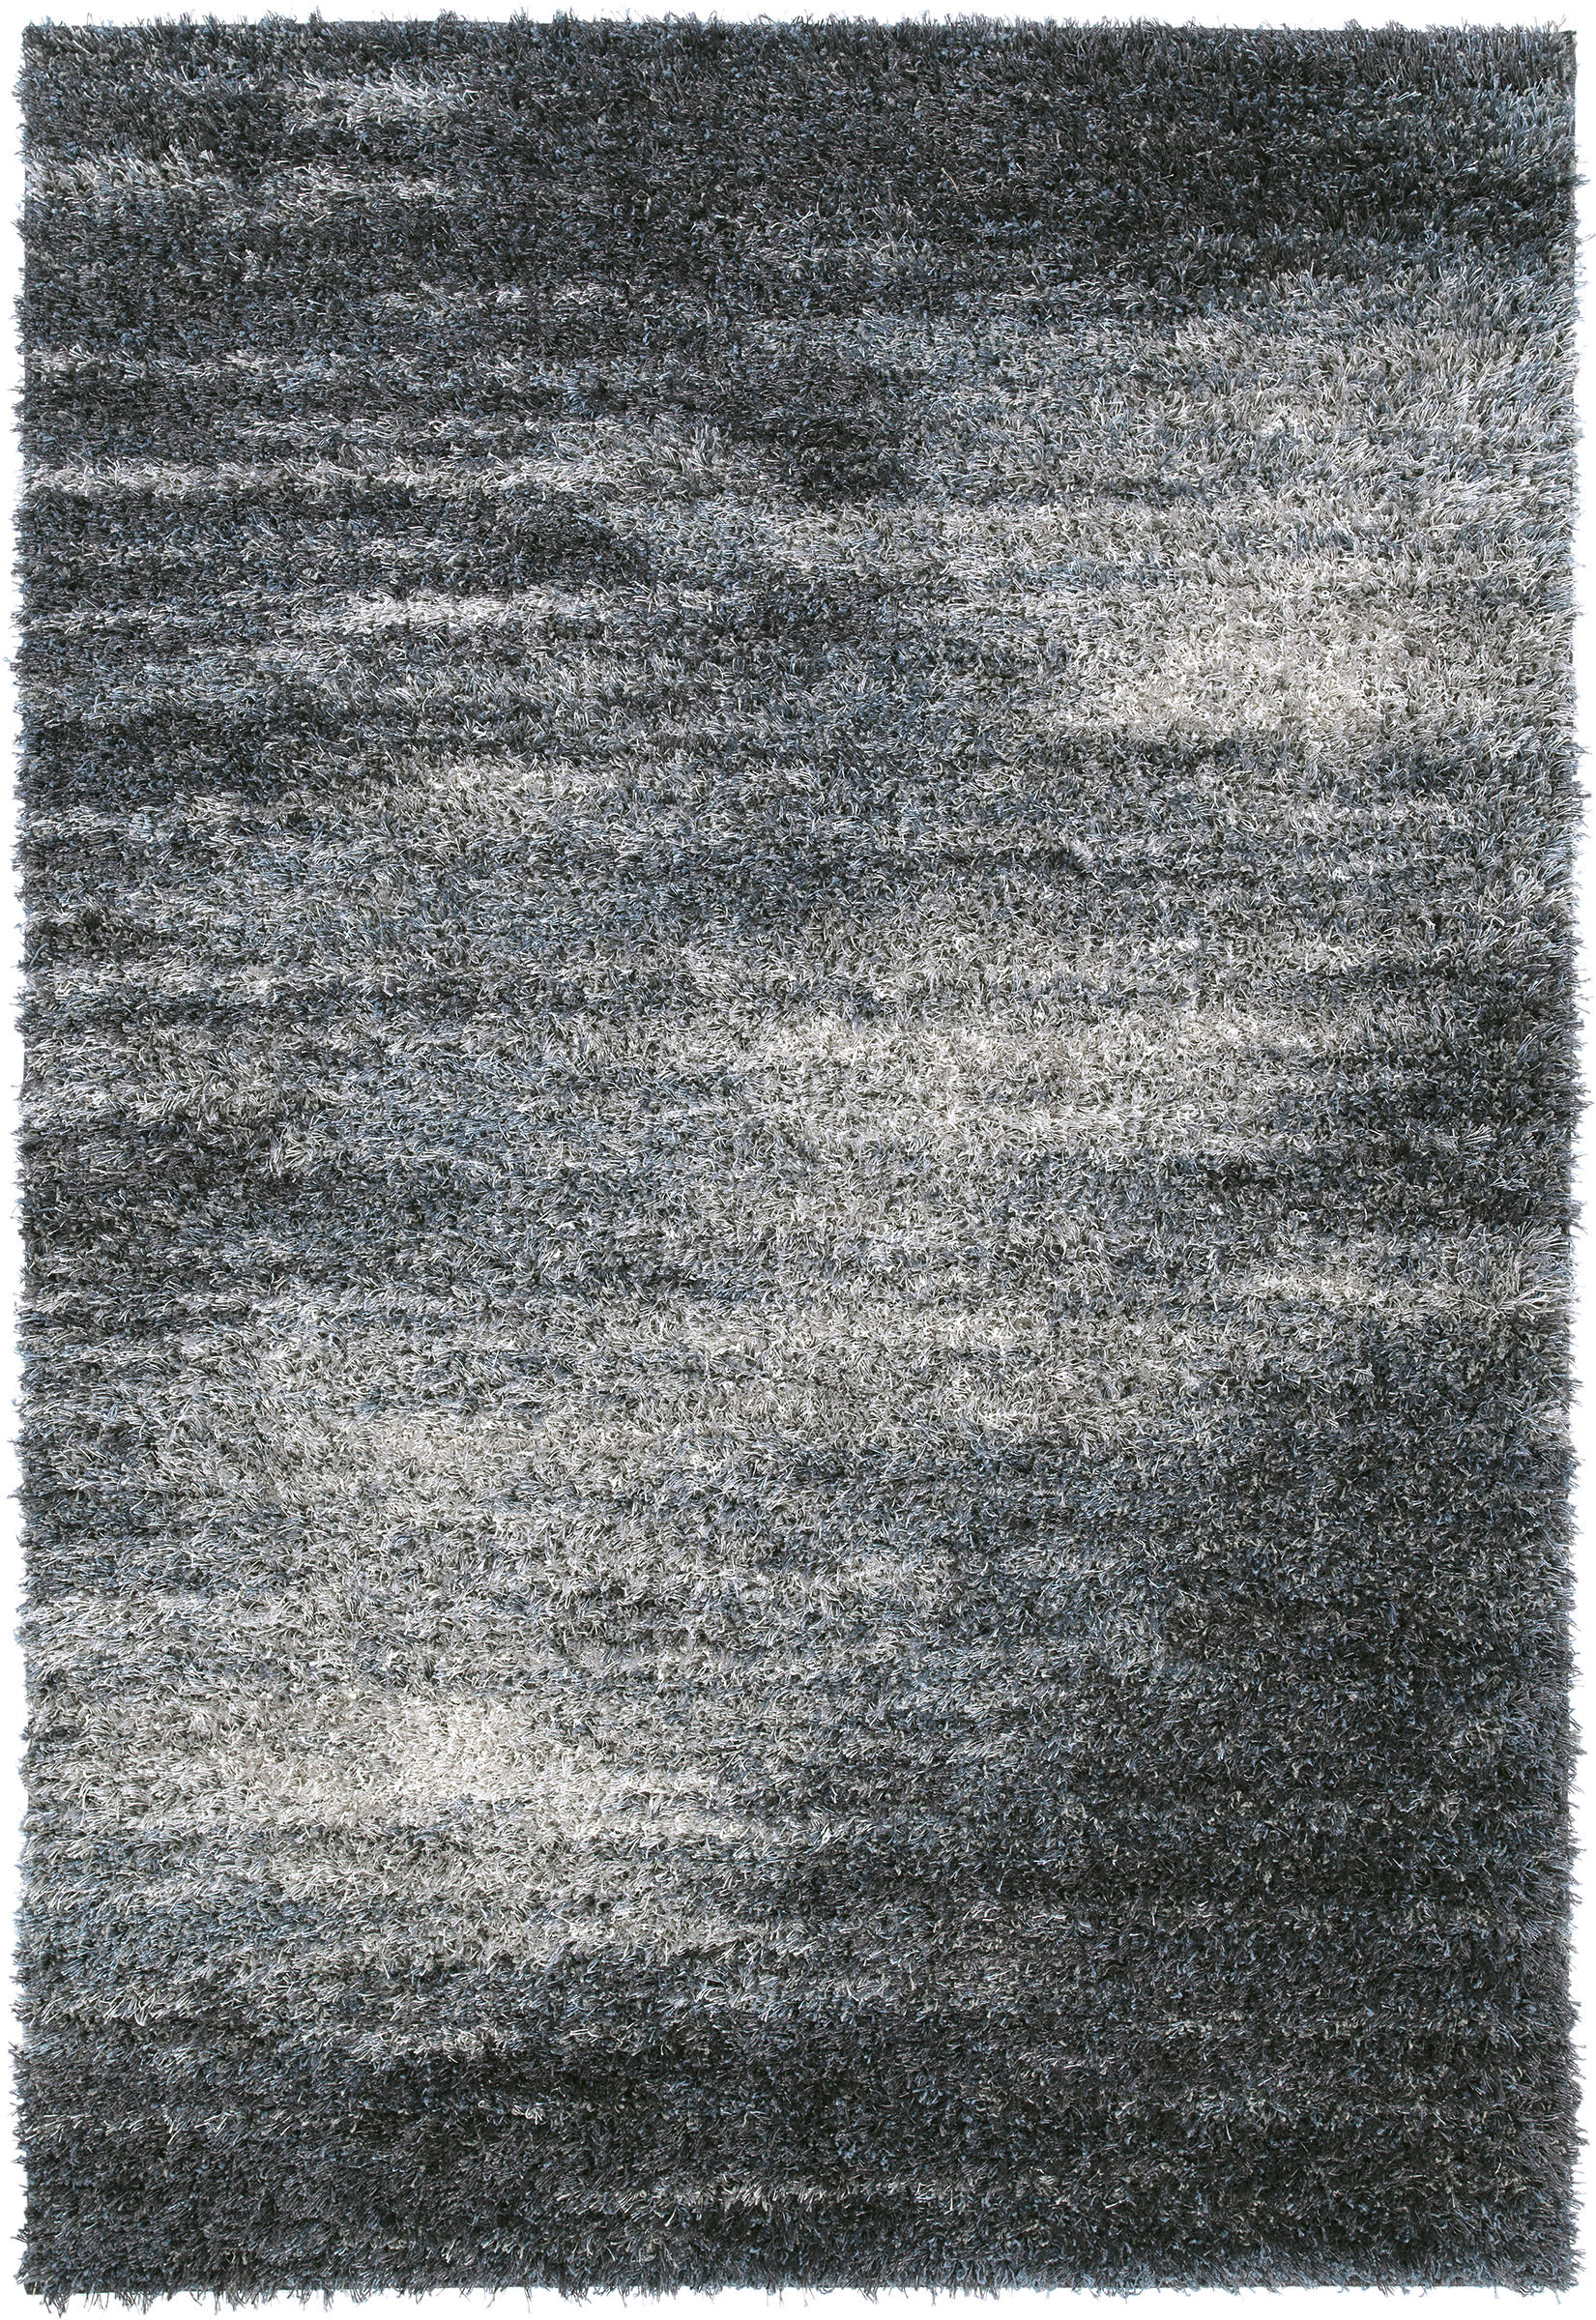 Rugs Online Sale Dalyn Rugs Animal Print Contemporary Area Rug In Charcoal